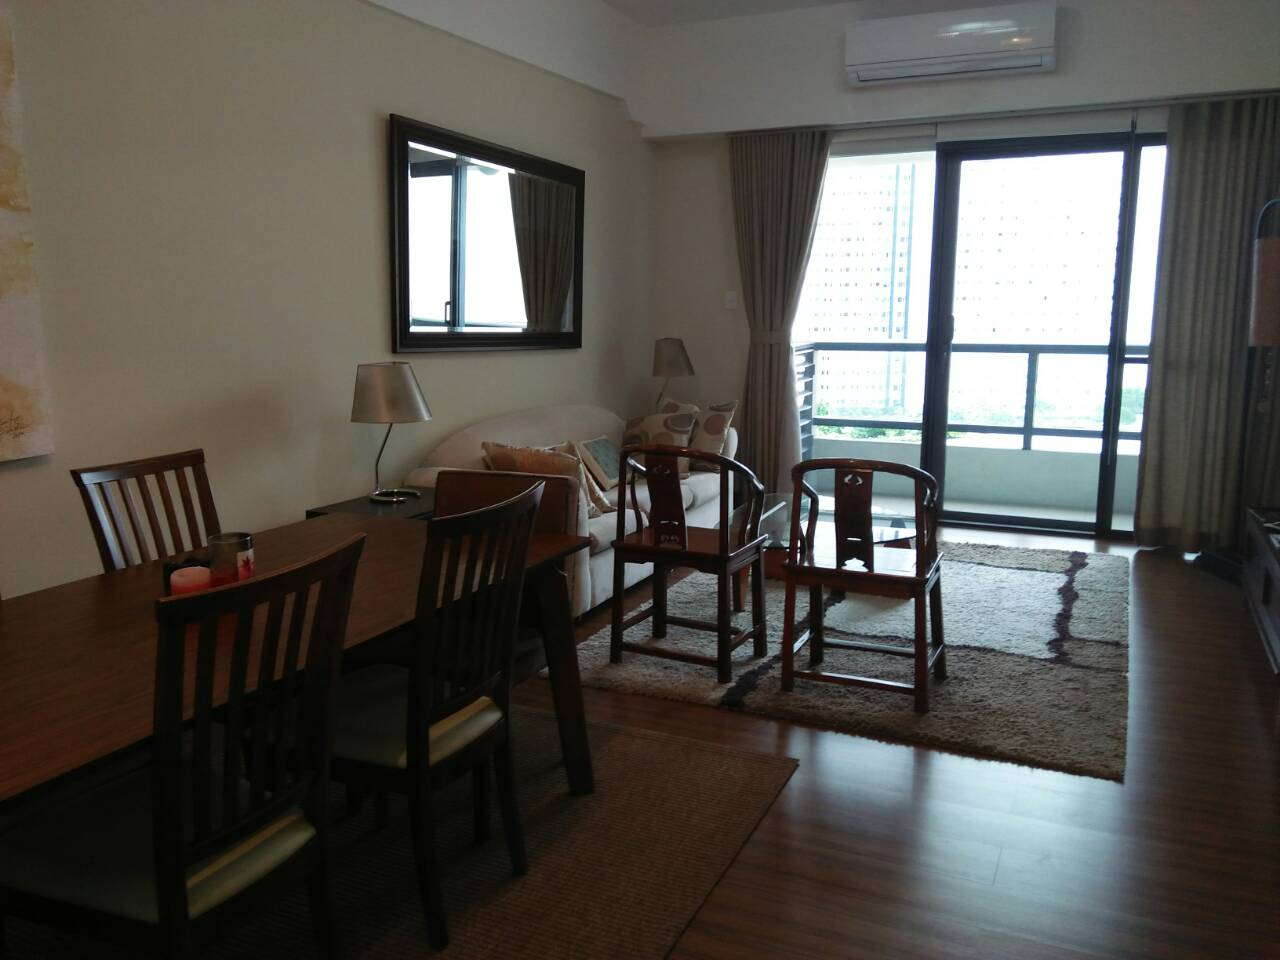 2 Bedrooms Condo, Shang Salcedo Place Dining Area View 1